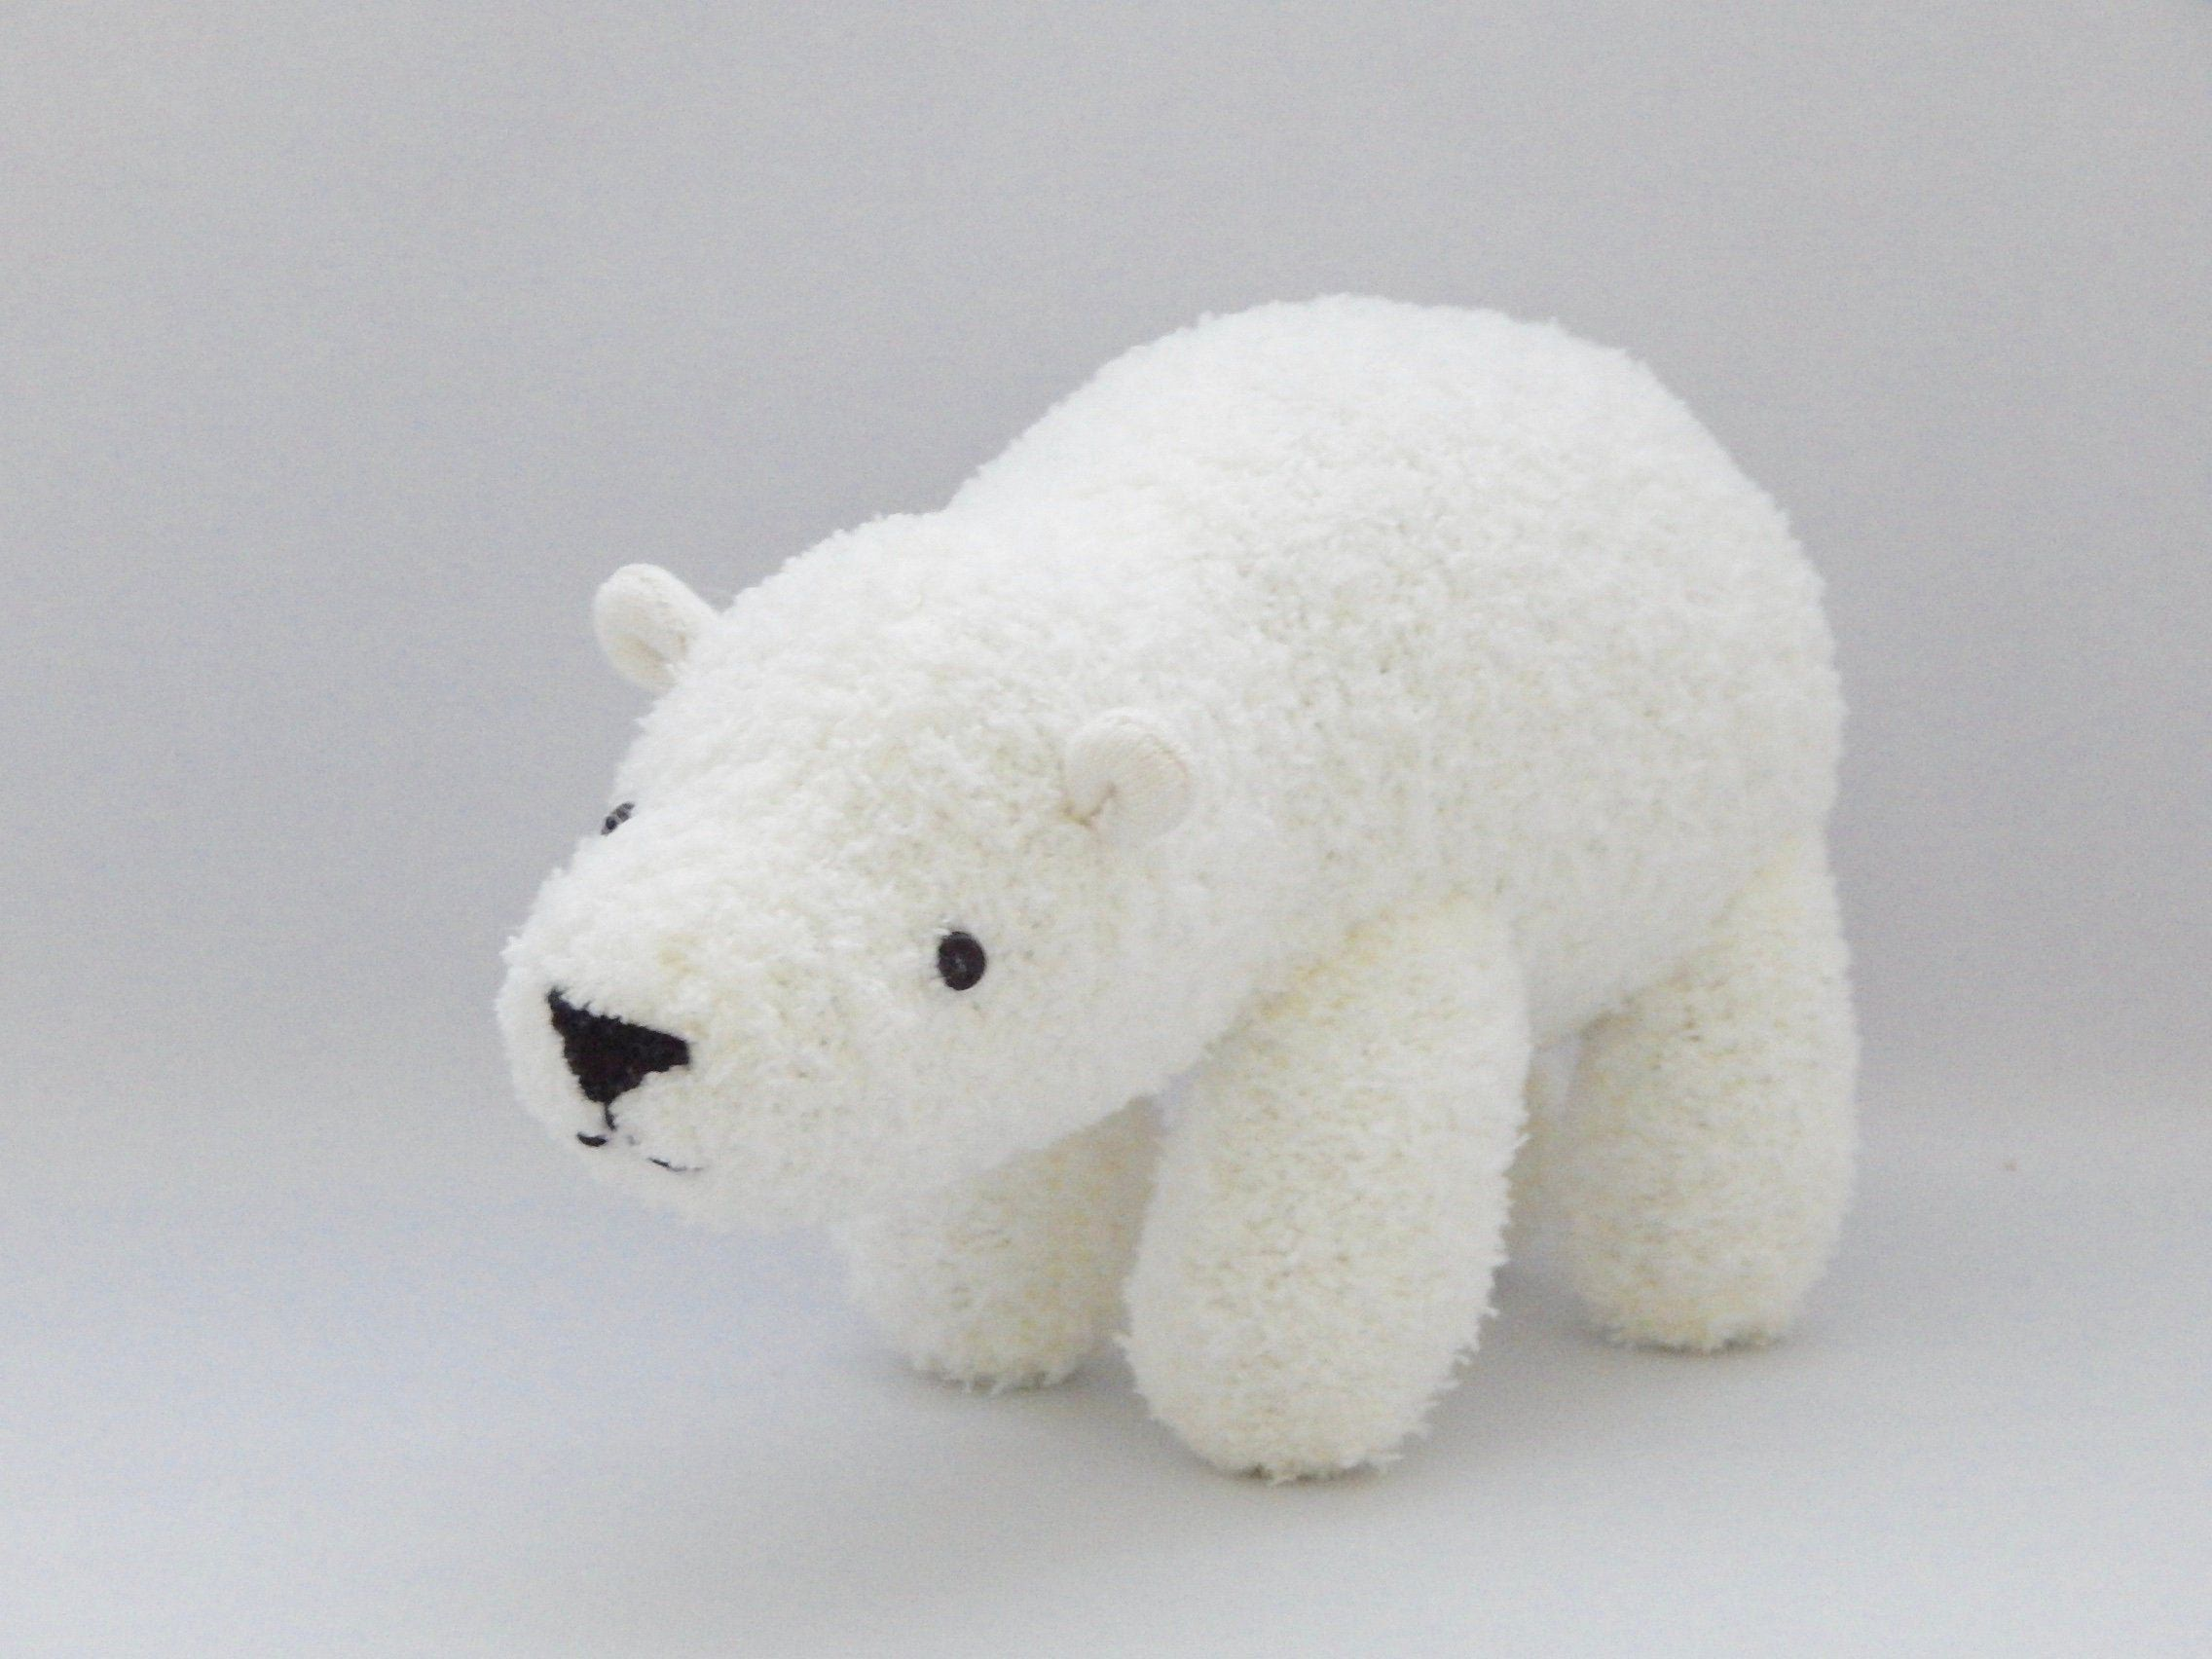 Polar Bear Plush Toy, White Bear Stuffed Animal, Plushie, Sock Monkey #bearplushtoy Polar Bear Plush Toy, White Bear Stuffed Animal, Plushie, Sock Monkey by SockSockWorld on Etsy #bearplushtoy